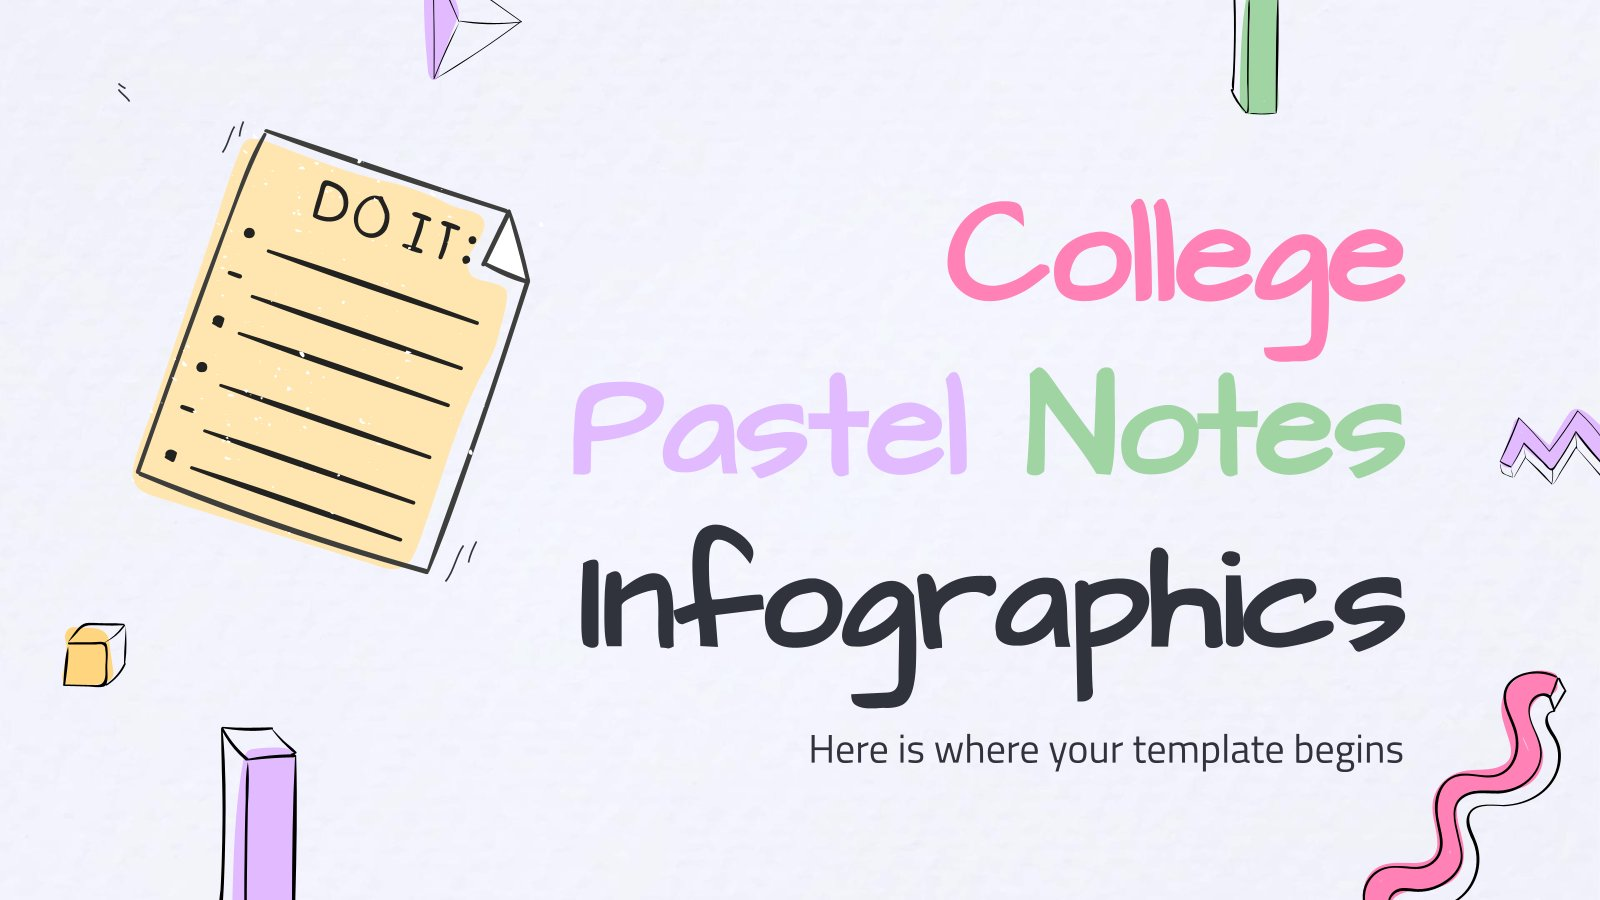 College Pastel Notes Infographics presentation template